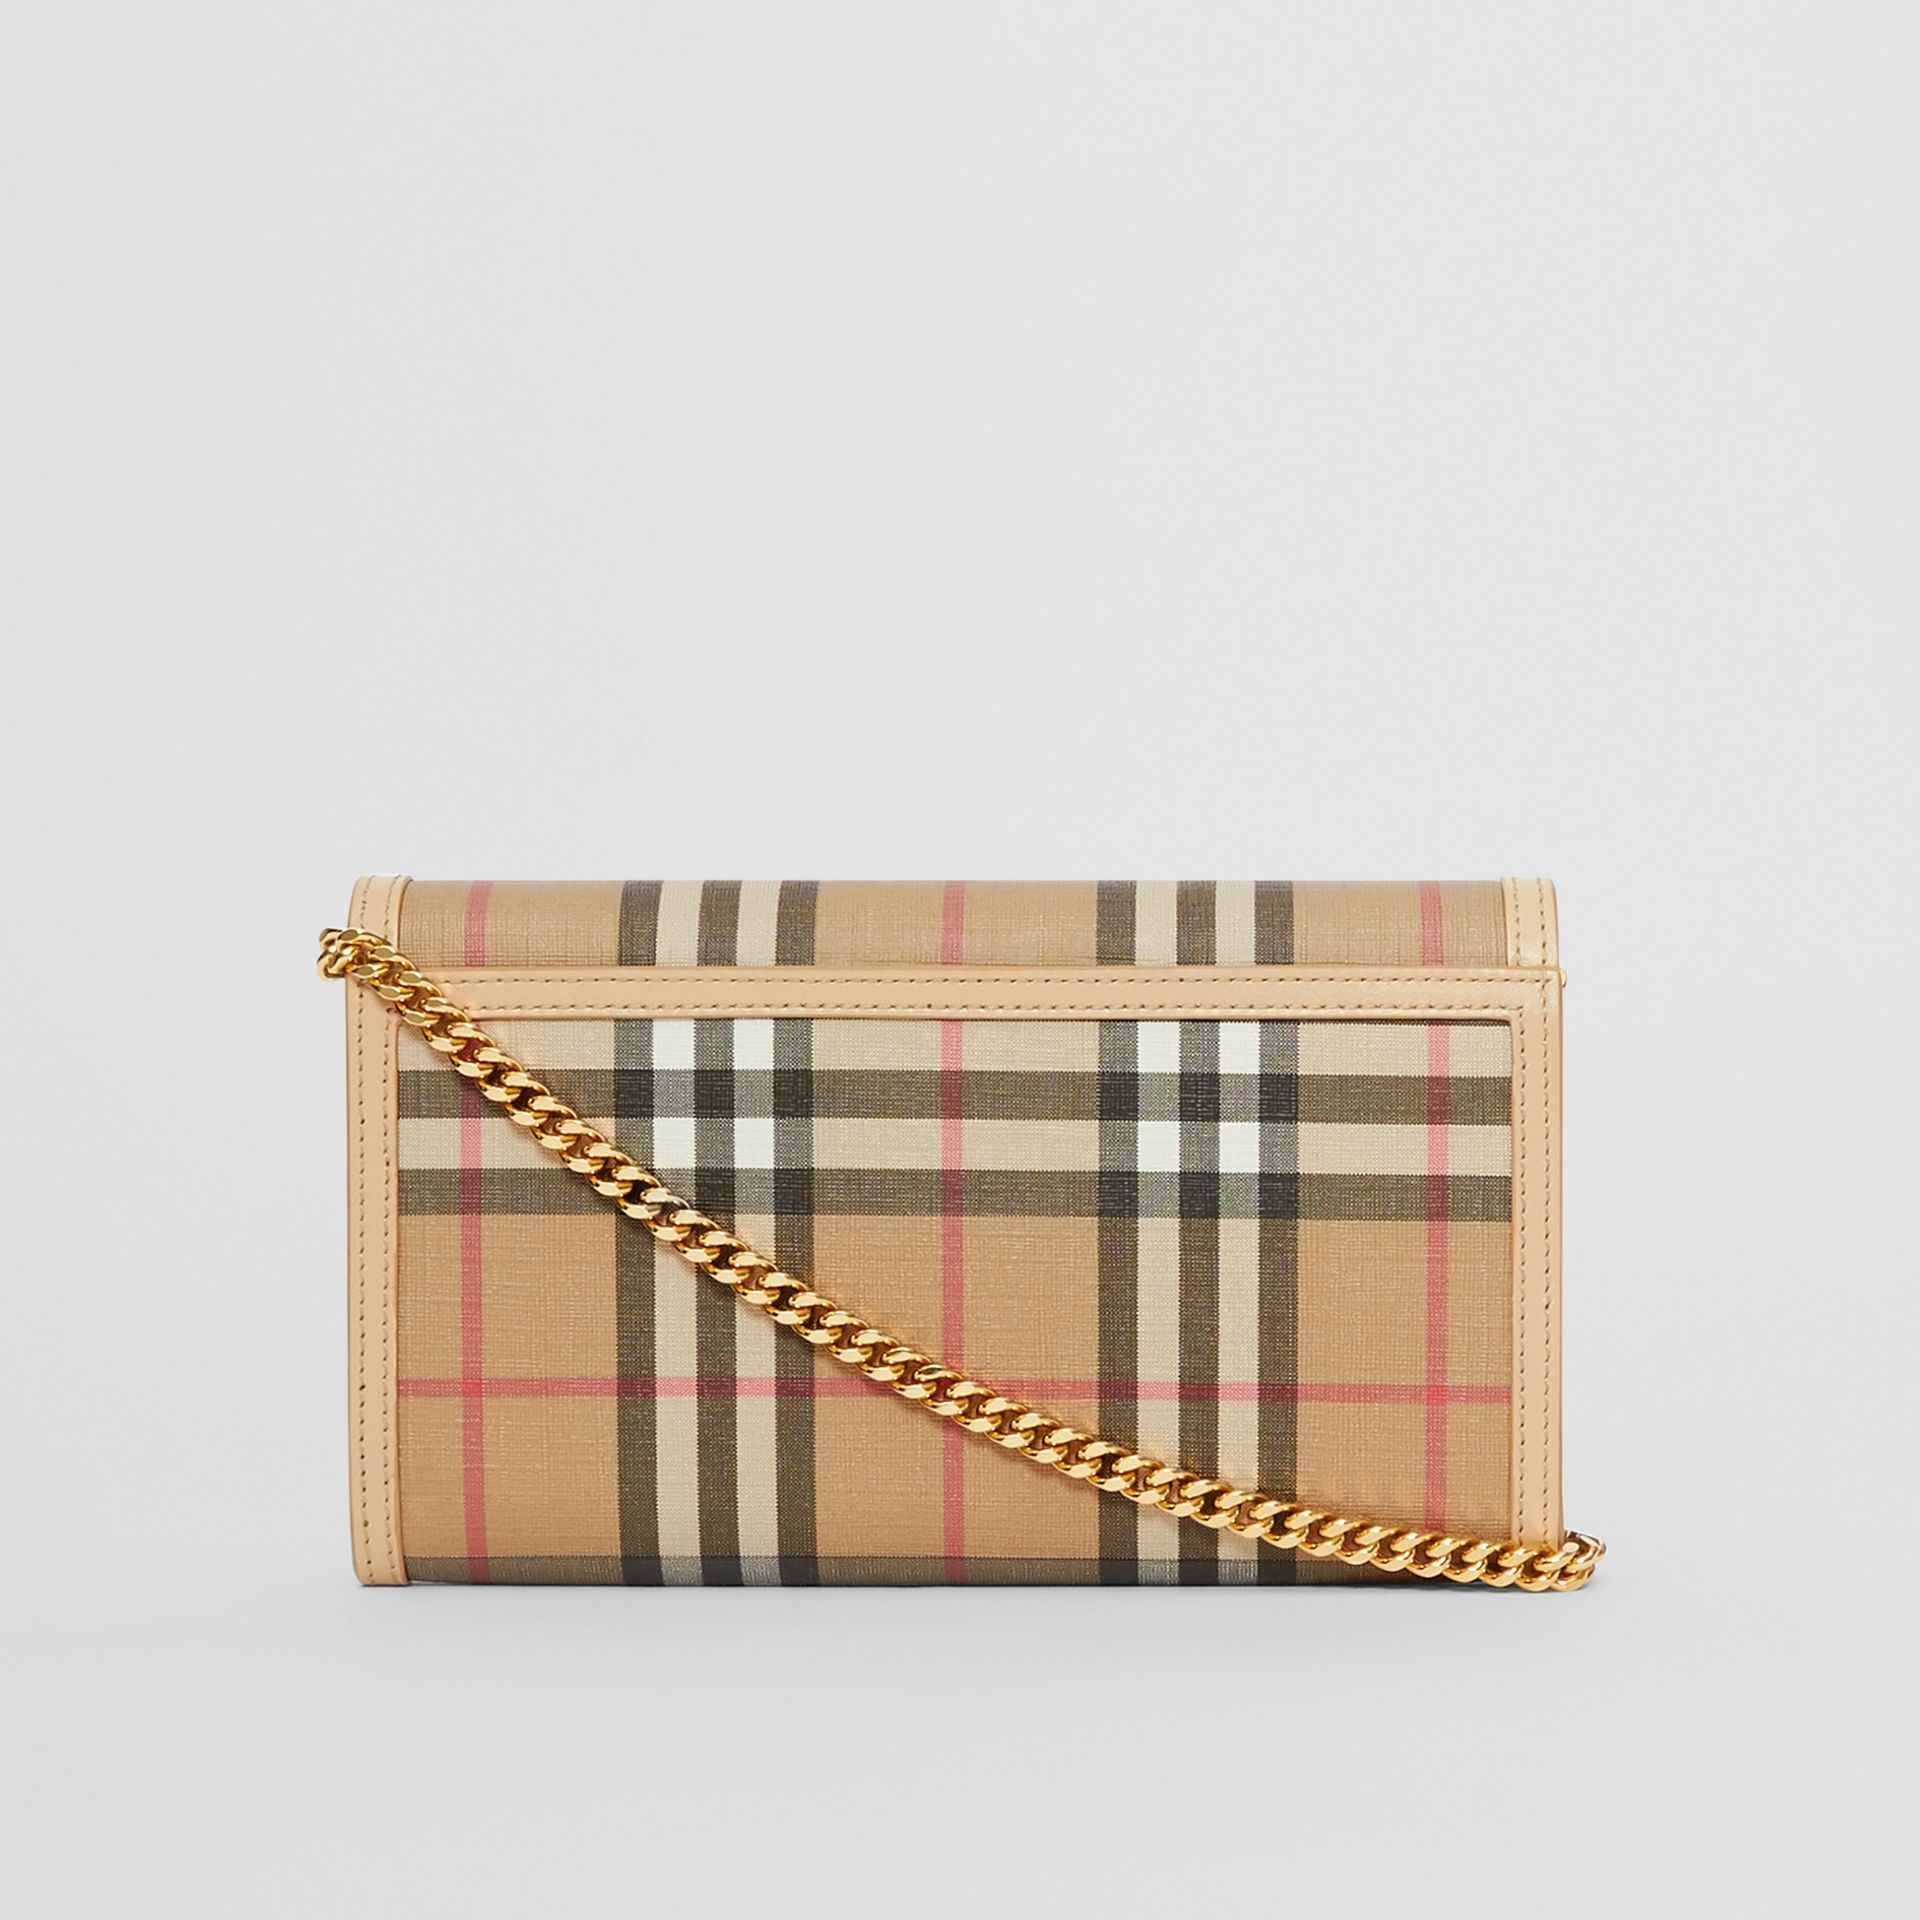 Vintage Check E-canvas Wallet with Detachable Strap in Beige - Women | Burberry - gallery image 7